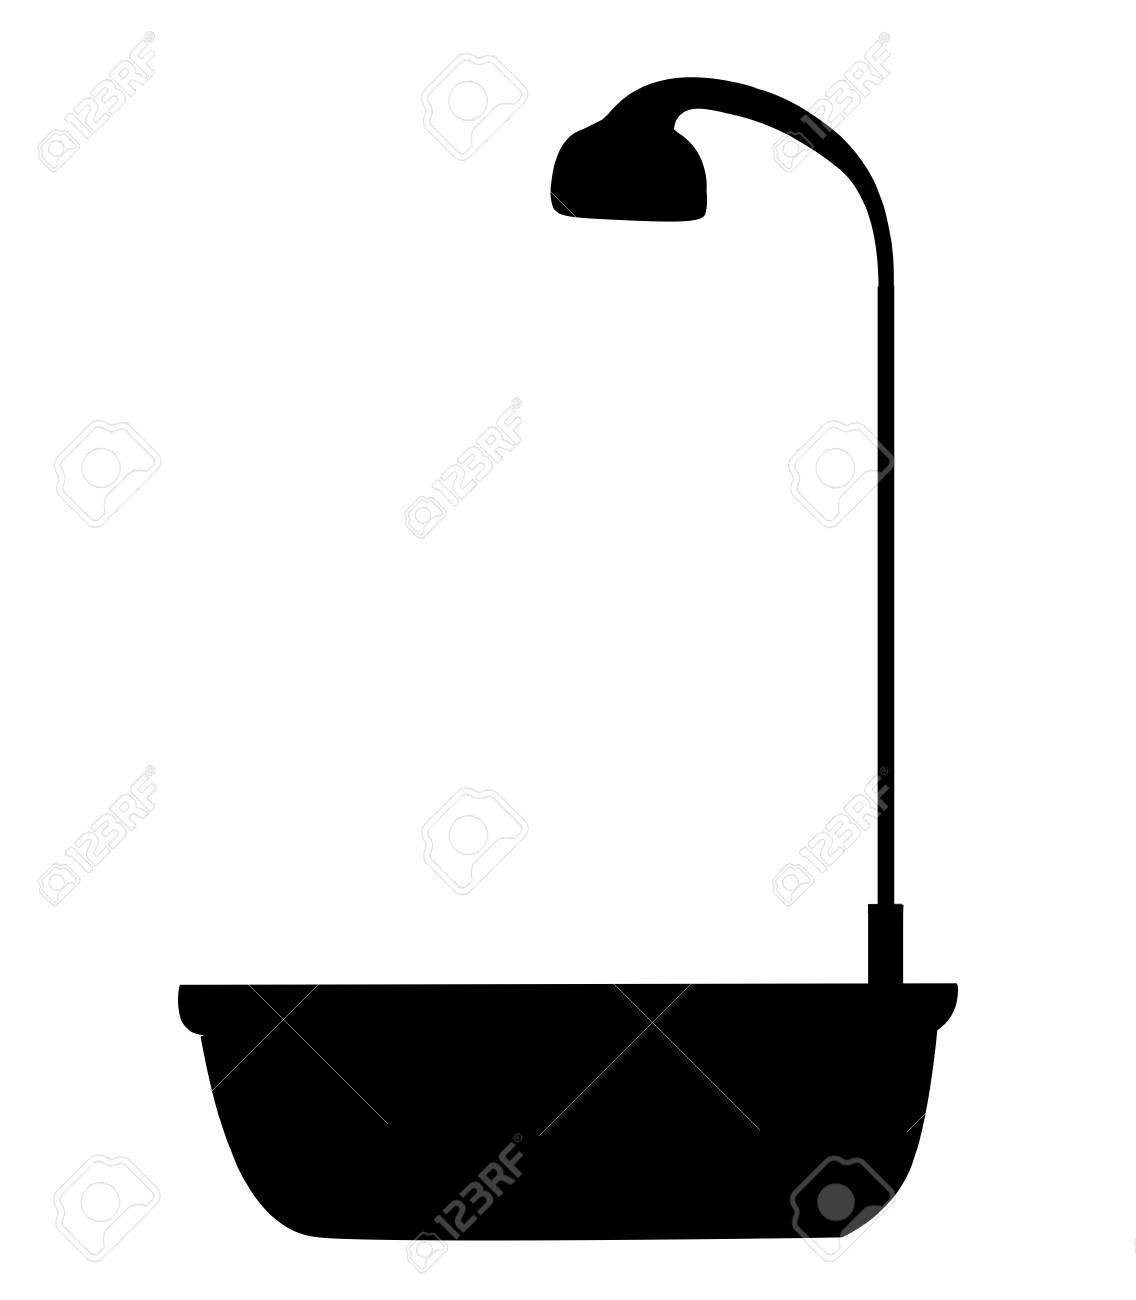 Black Silhouette Of Bathtub With Shower Head Icon Isolated On ... for shower head clipart black and white  66pct